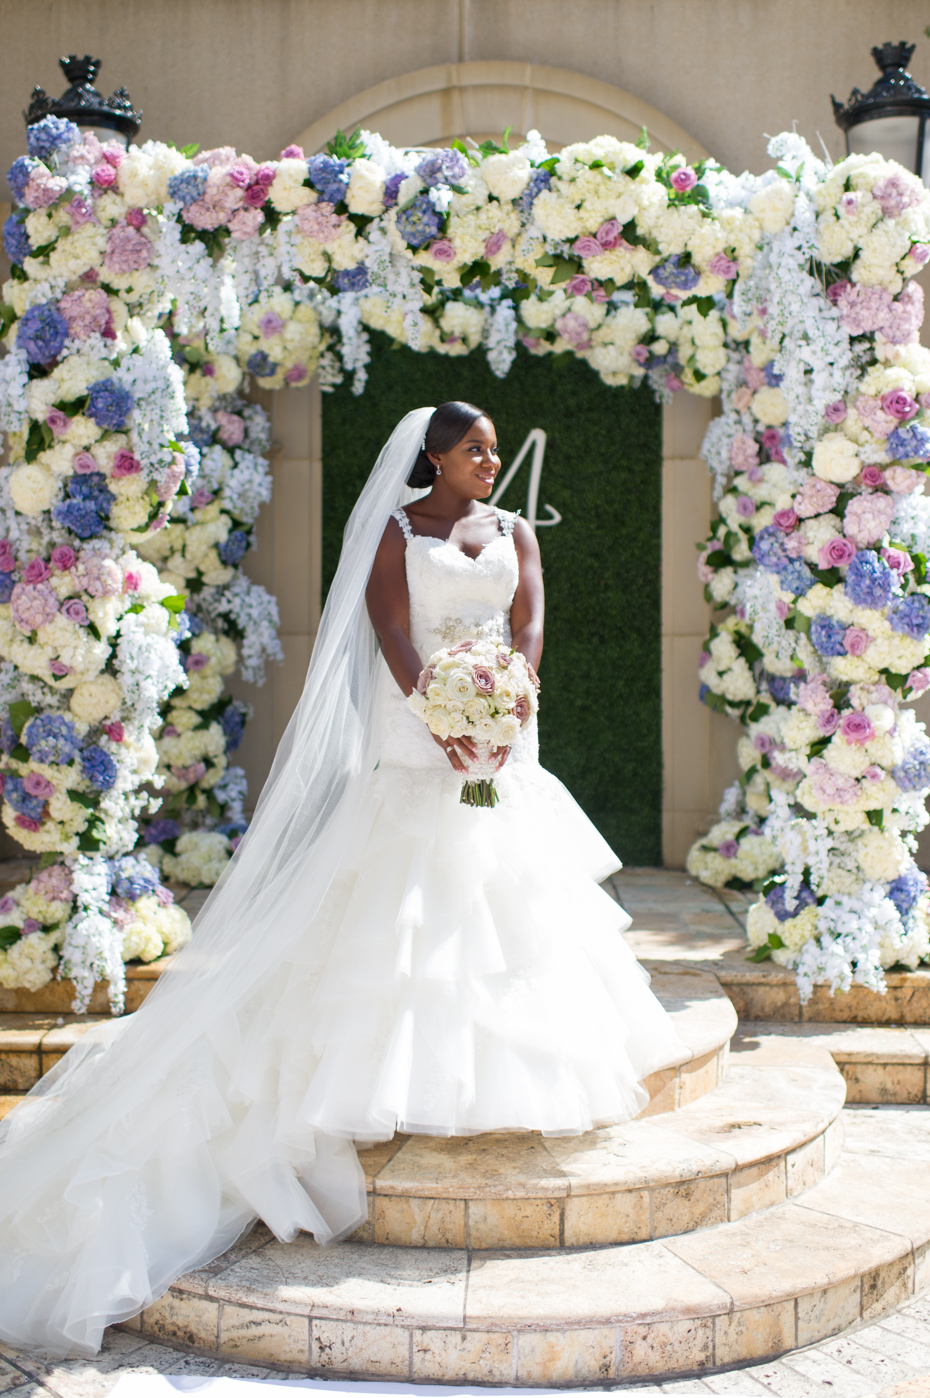 Bride in front of floral arbor by Legendary Events Atlanta